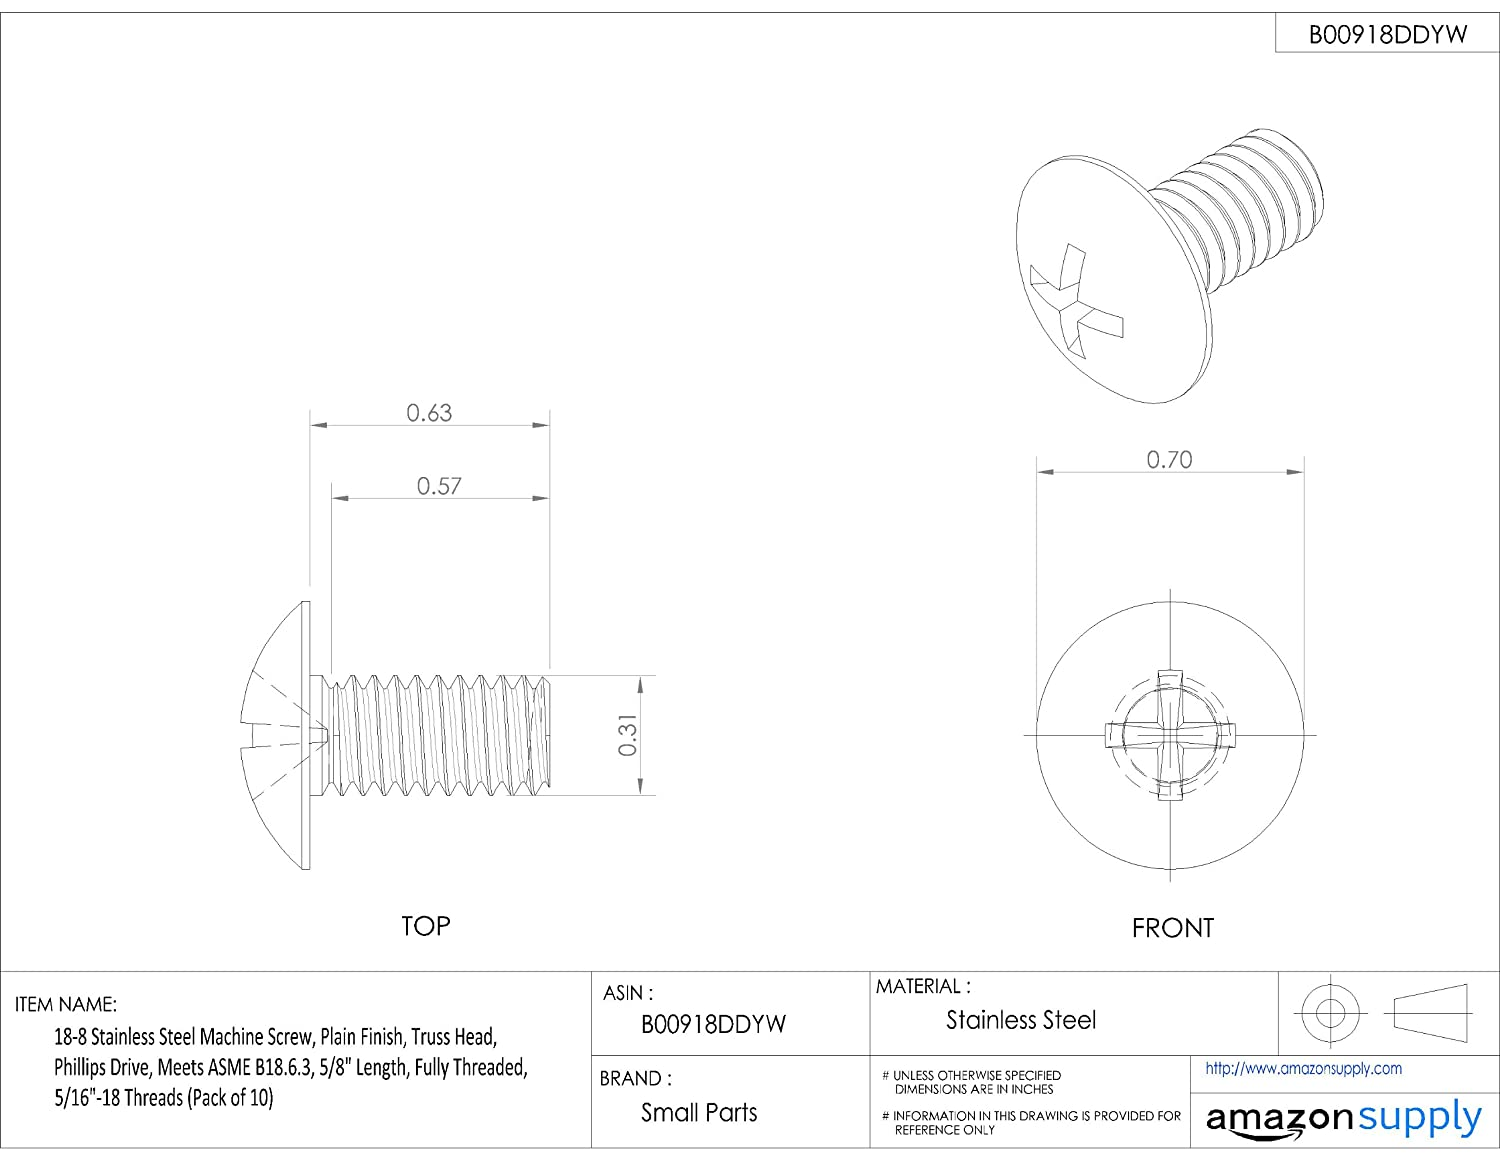 Small Parts Truss Head Pack of 10 3//8-16 UNC Threads Plain Finish Phillips Drive 18-8 Stainless Steel Machine Screw Pack of 10 3//4 Length Fully Threaded 3//4 Length 3//8-16 UNC Threads Meets ASME B18.6.3